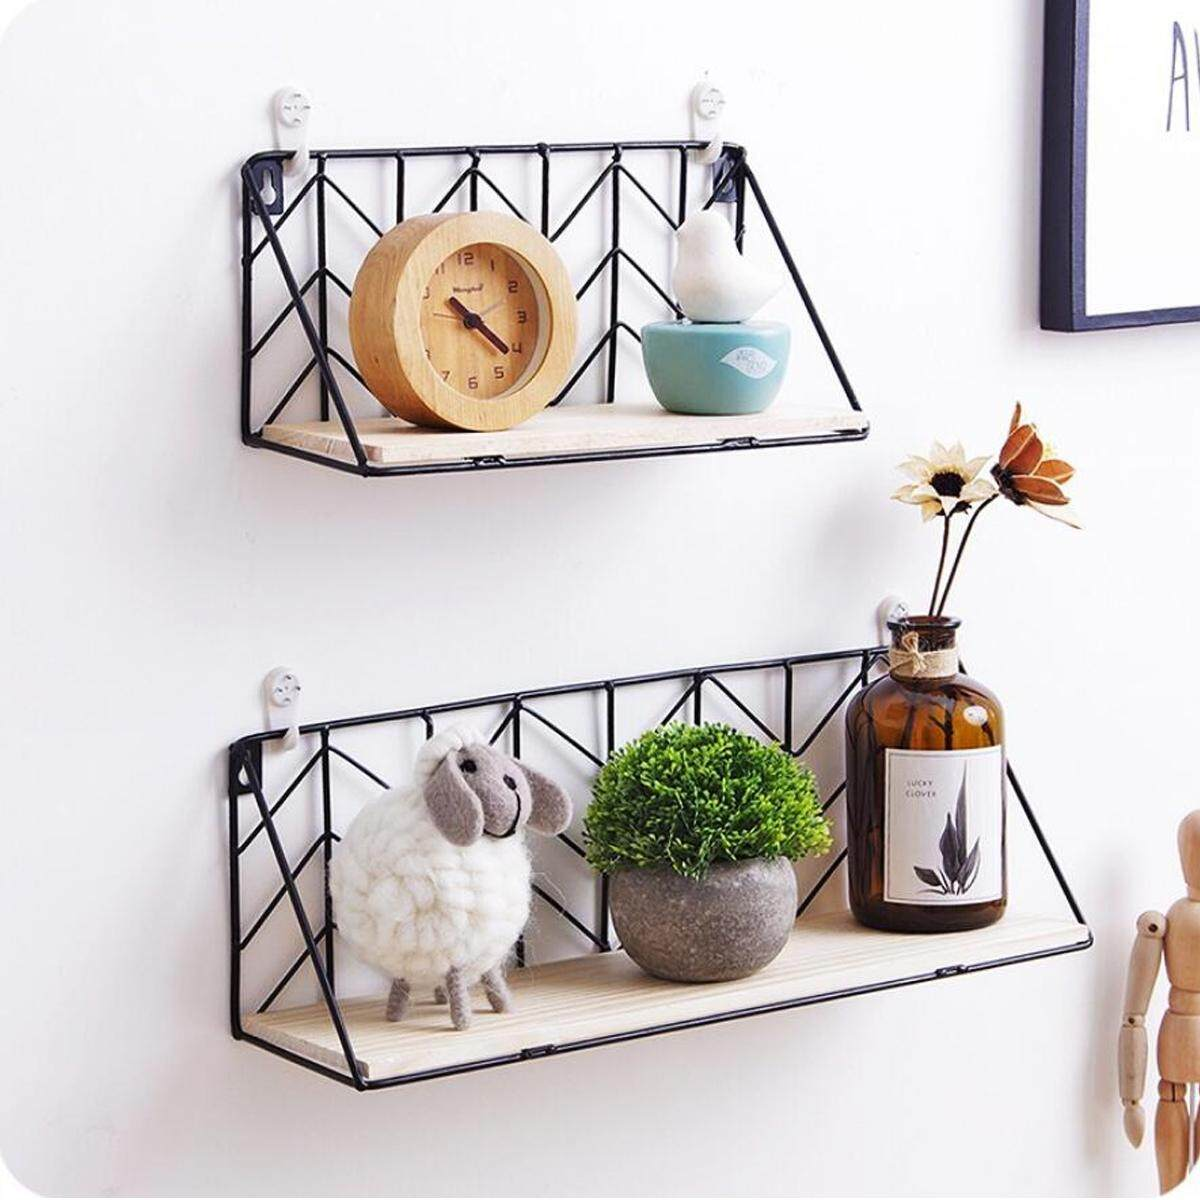 29x11x14cm Wall Shelf Wooden Floating Shelving Home Decorative Storage Wall Mounted Rack